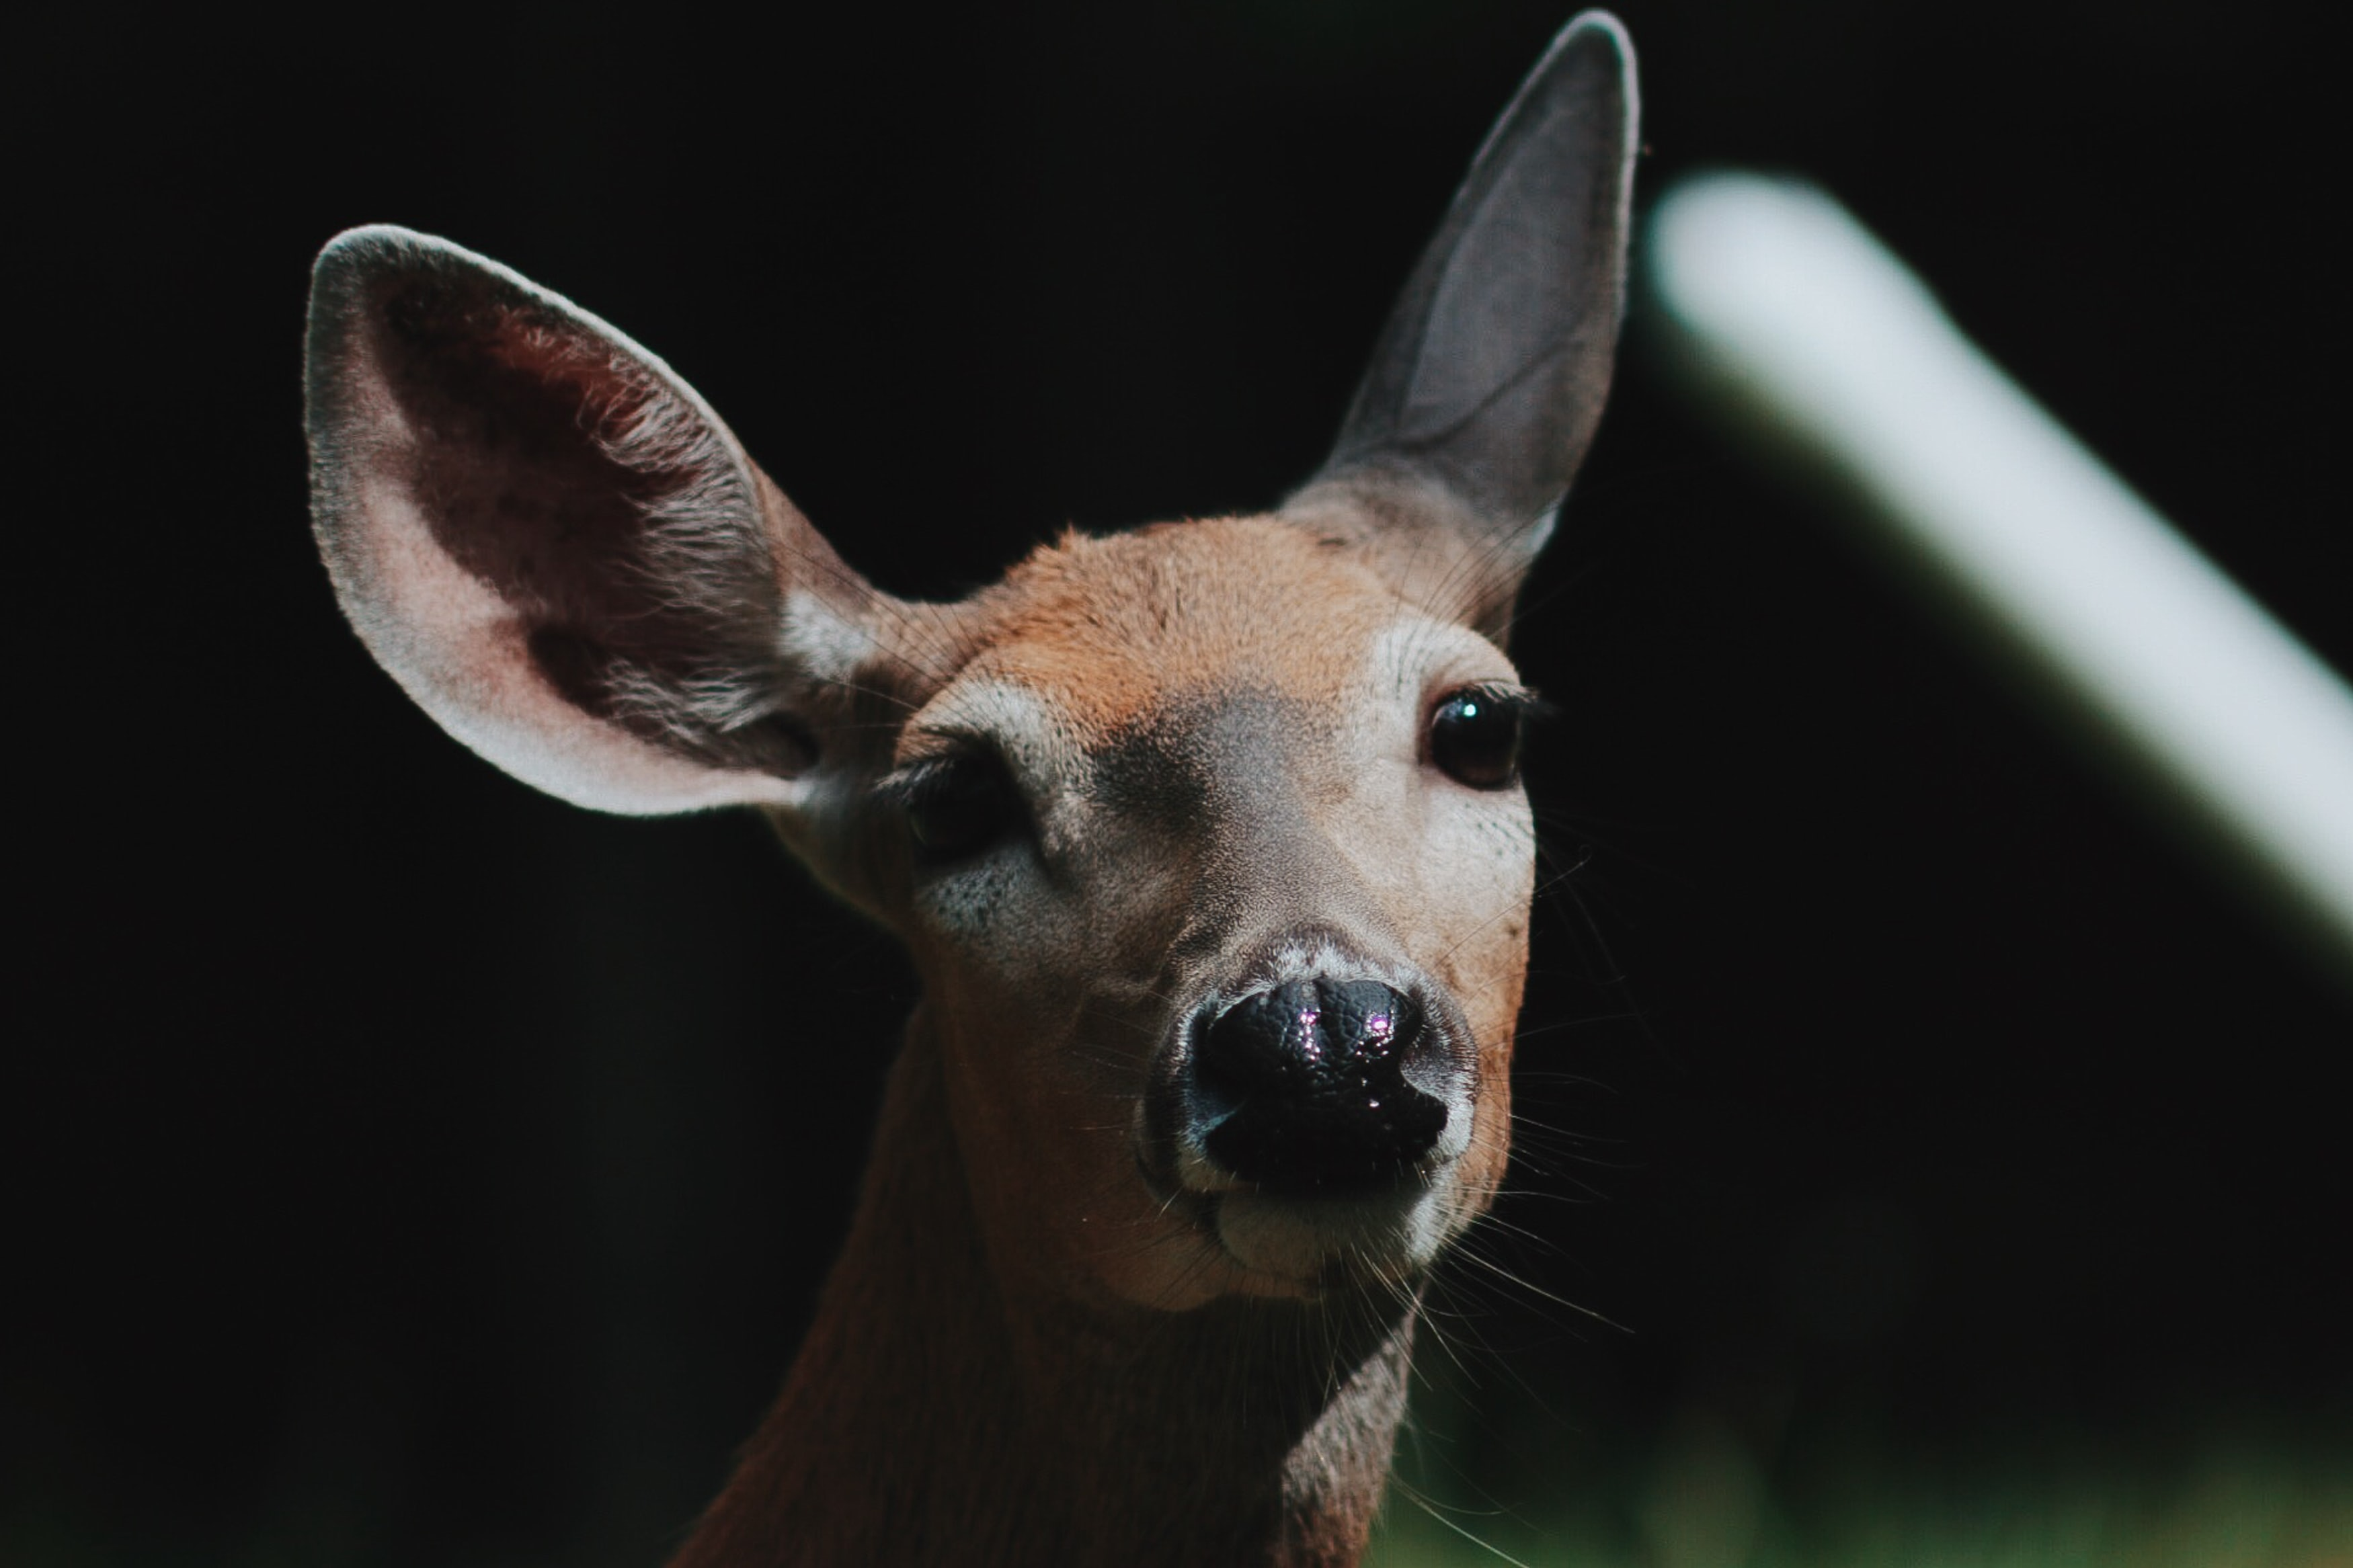 brown deer close-up photo